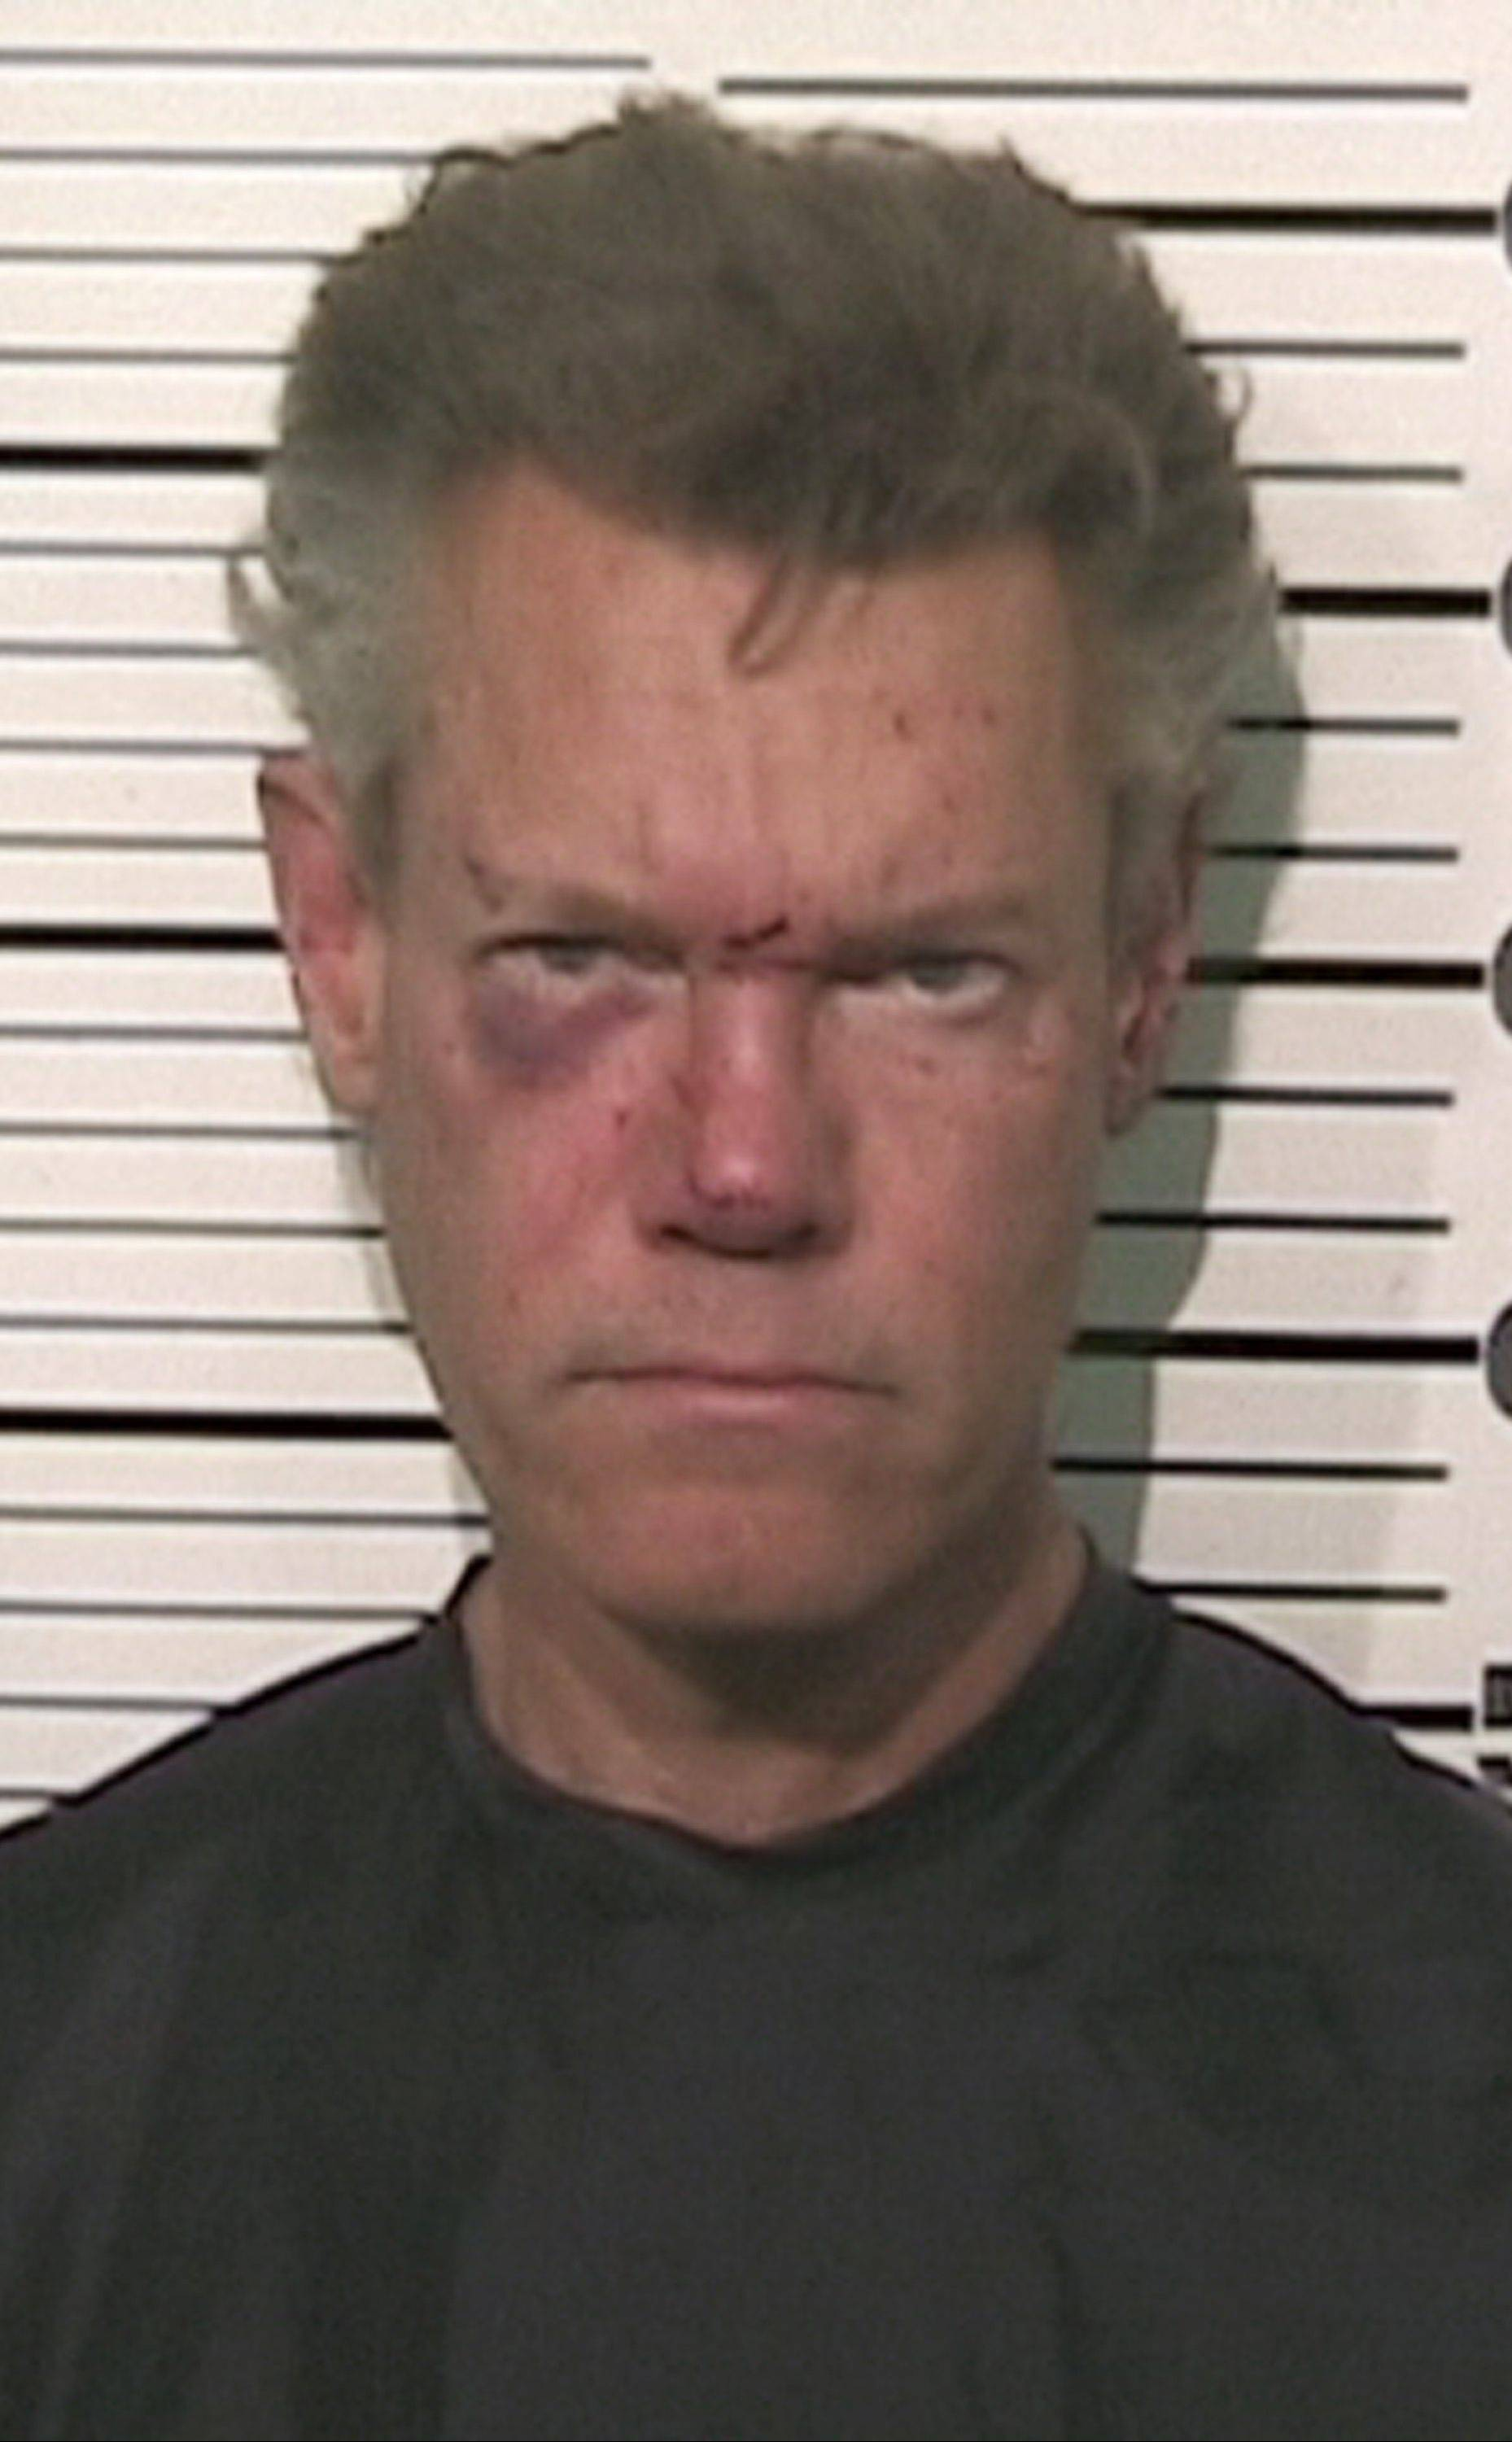 This file photo provided by the Grayson County, Texas, Sheriff�s Office shows Country singer Randy Travis. A prosecutor says the country music star is expected to enter a guilty plea in a drunken-driving case in North Texas.